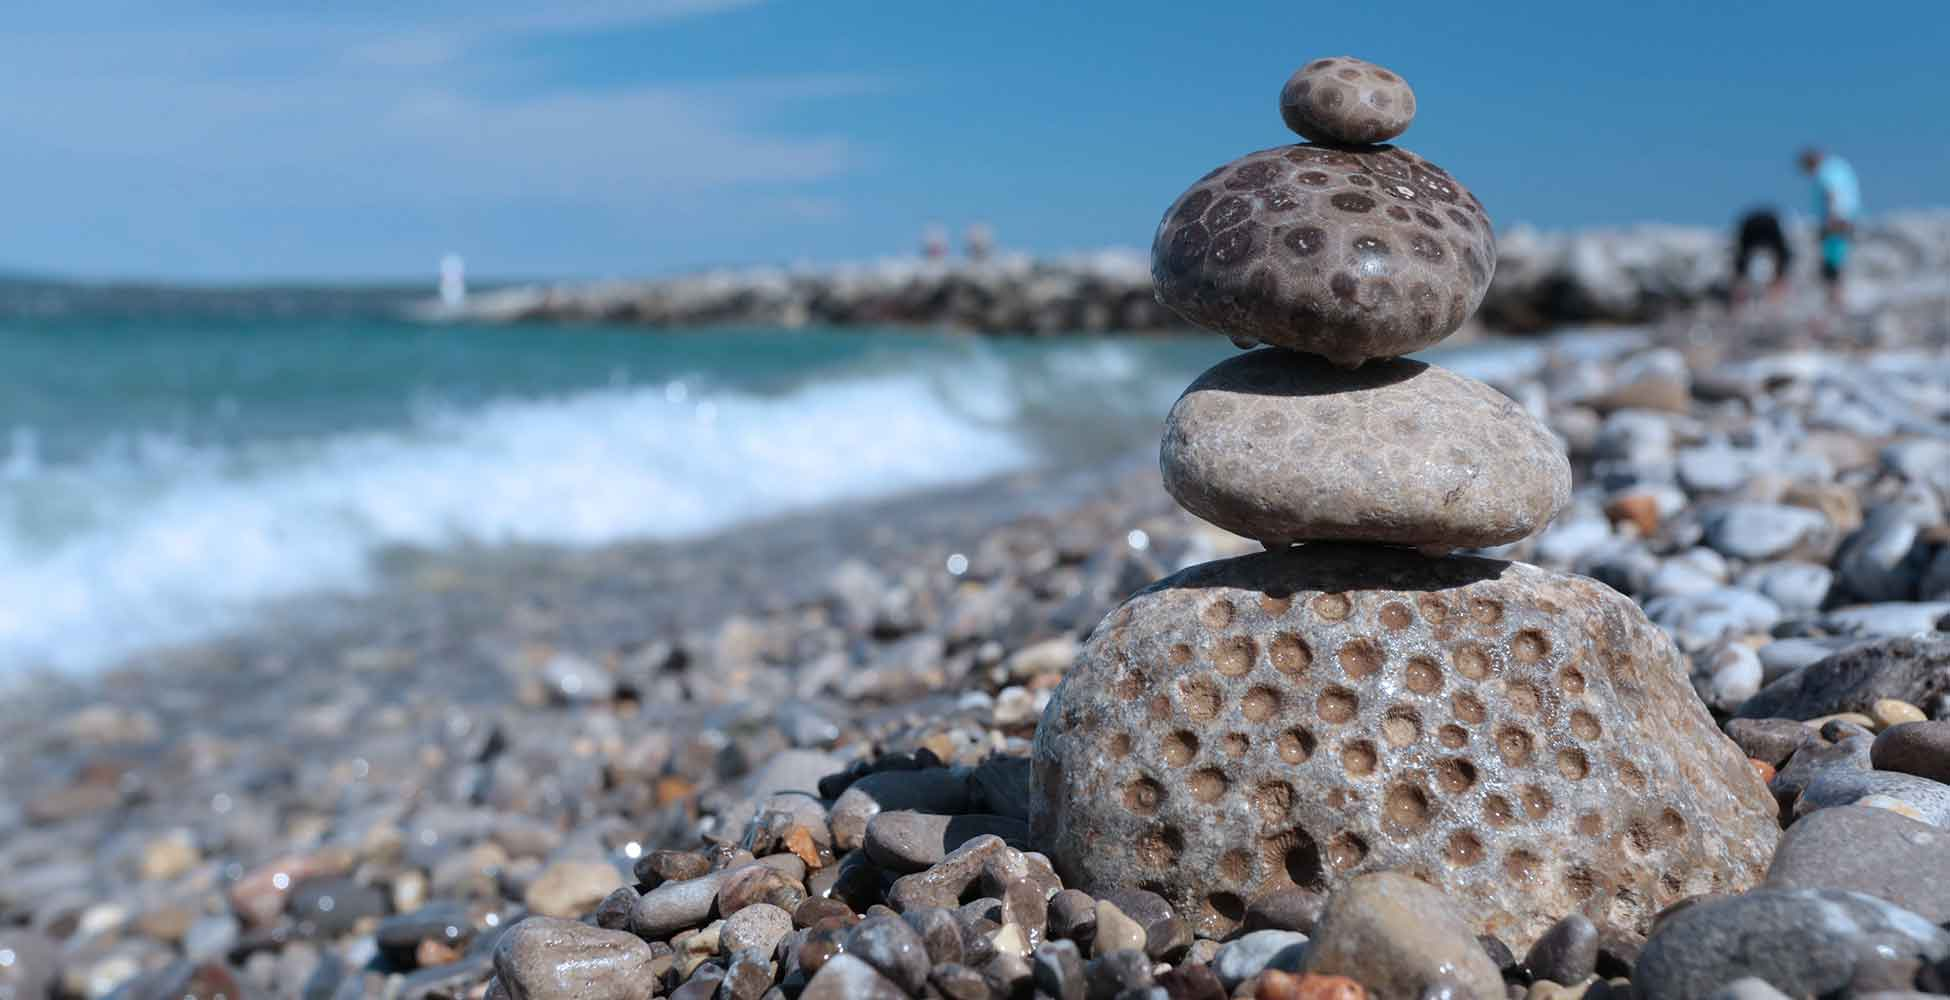 Petoskey Stones on West Michigan beach